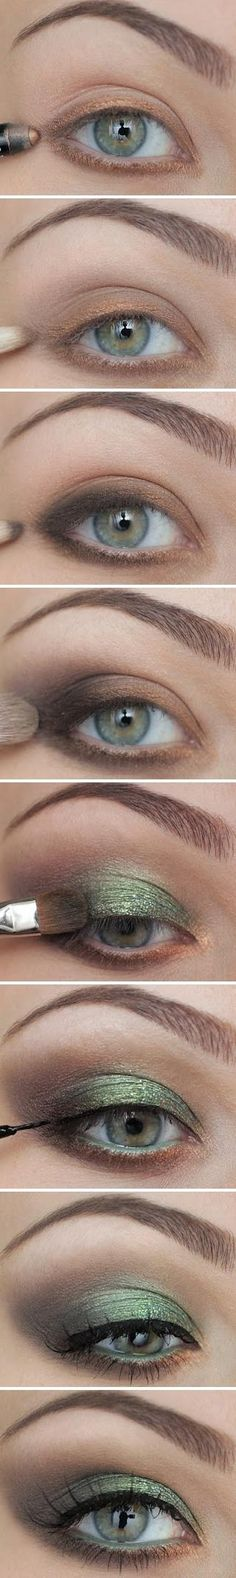 green & brown look #eye #makeup #pictorial